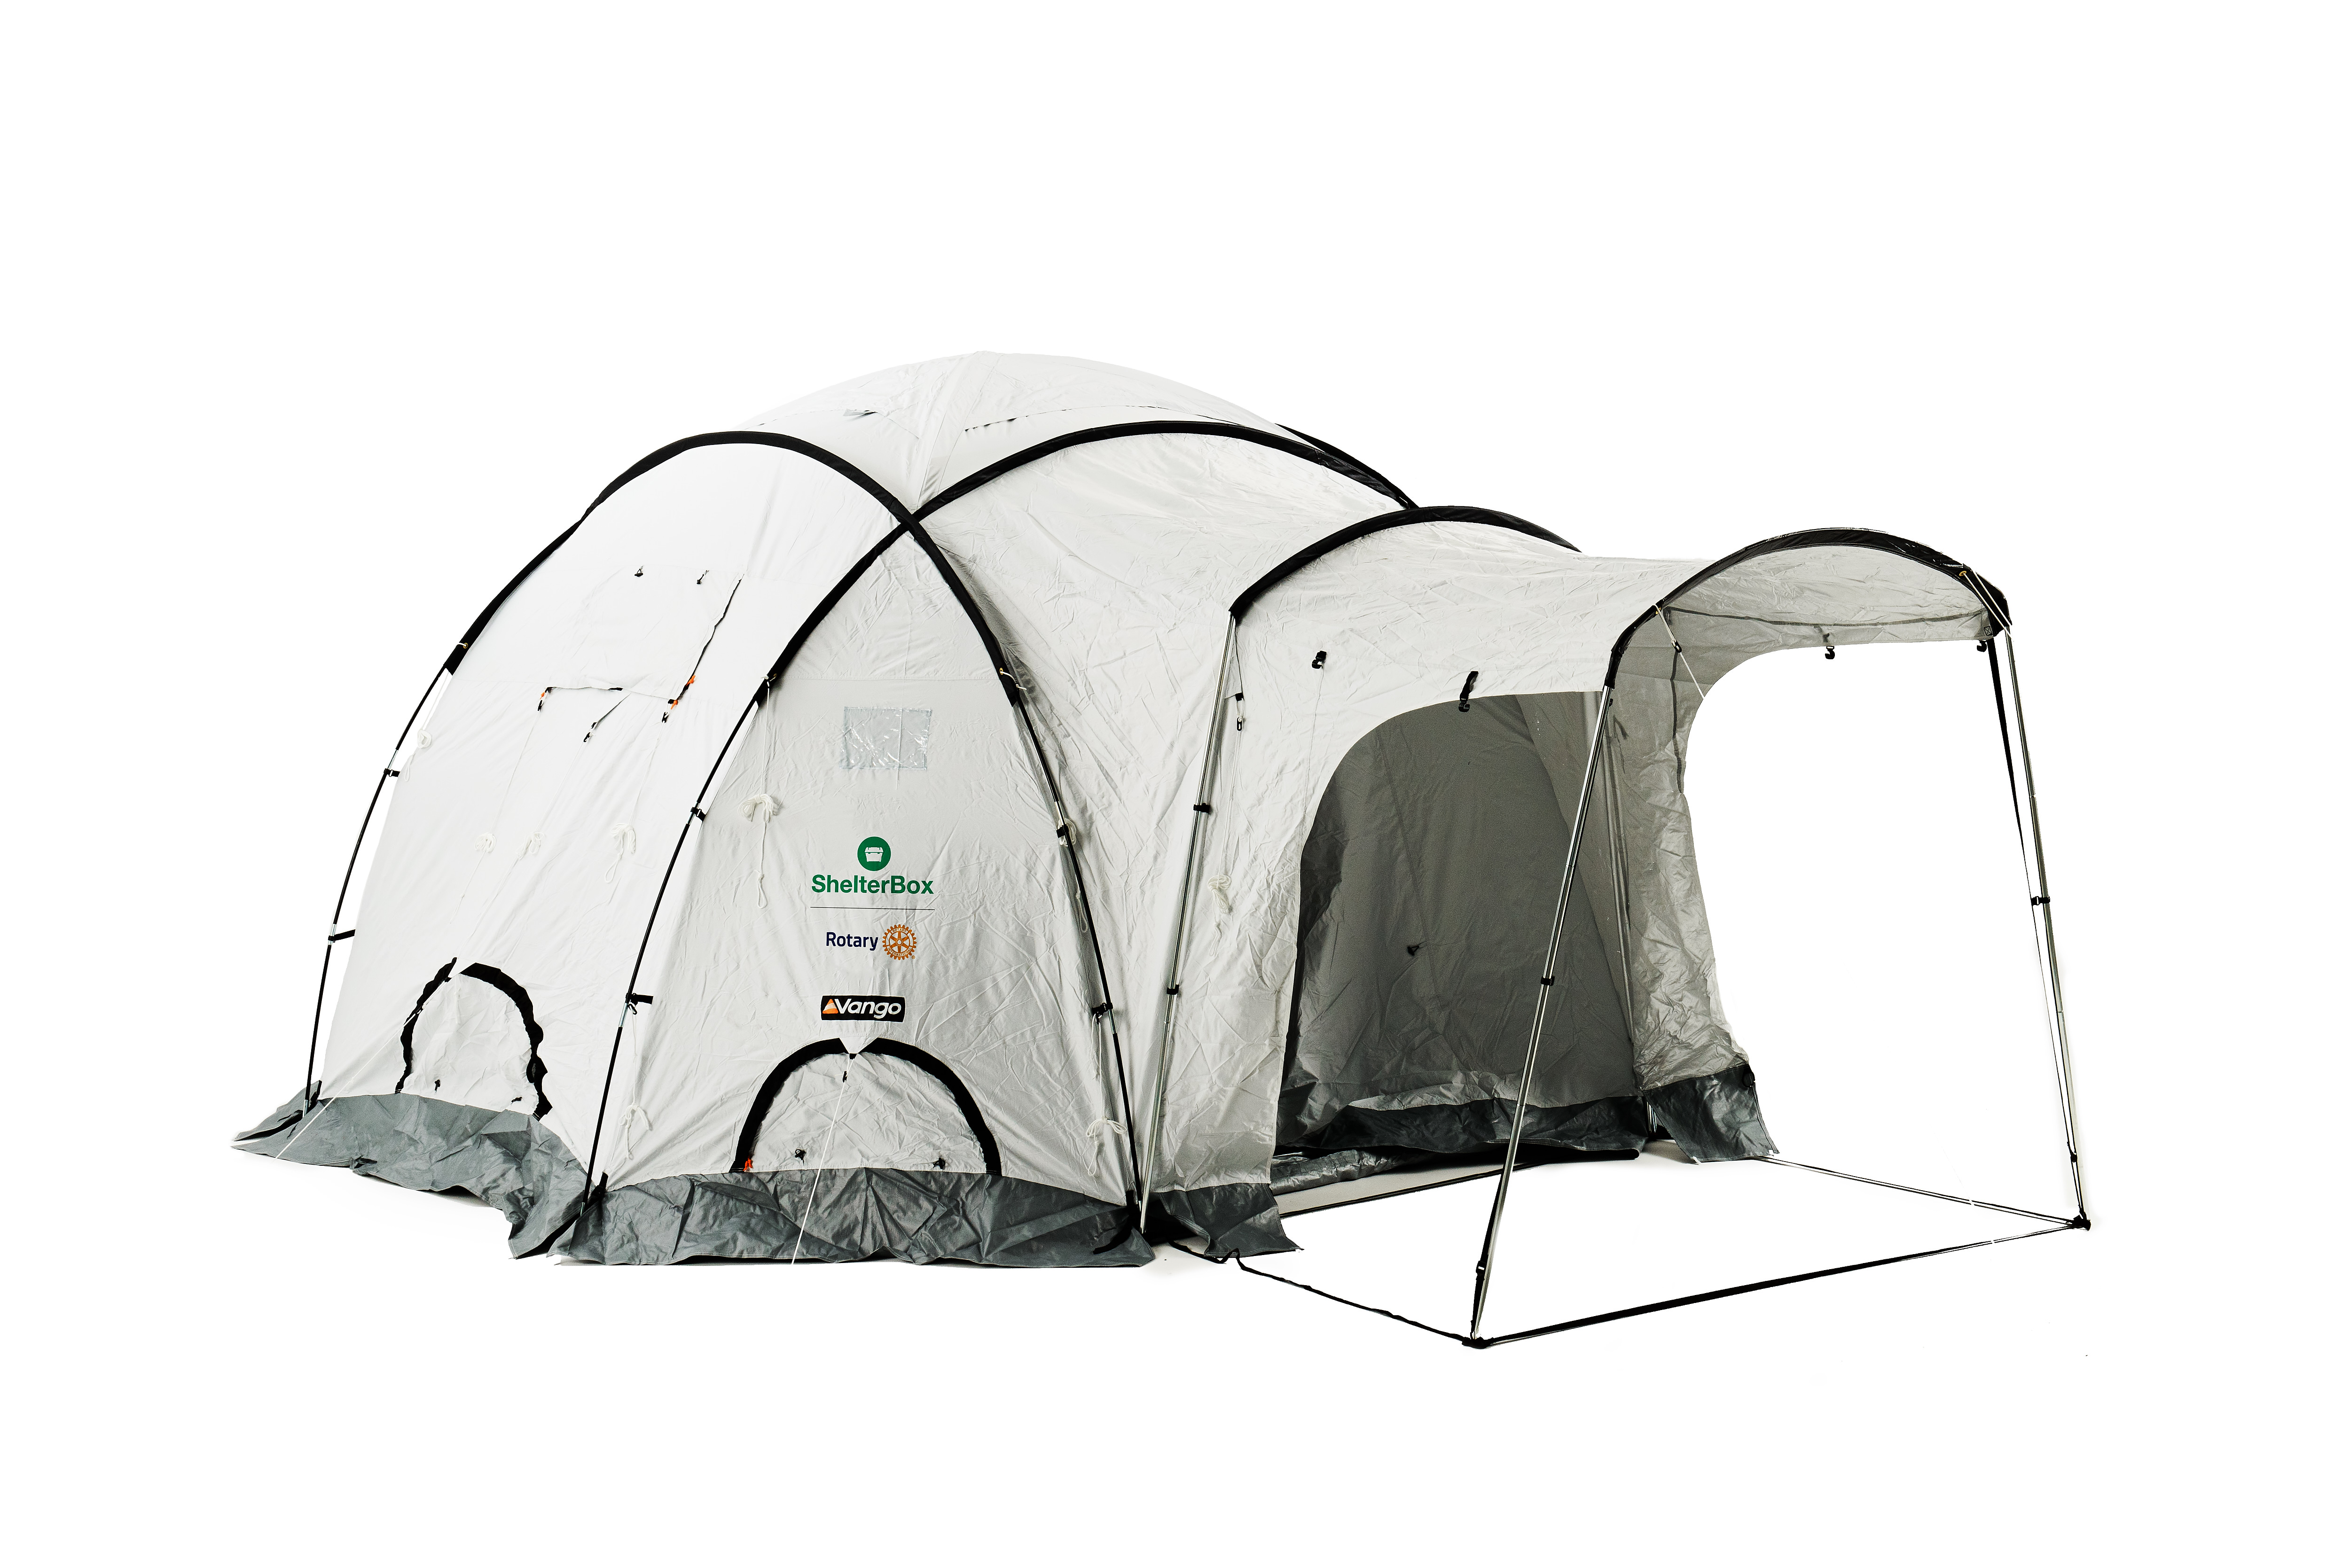 A ShelterBox tent that provides emergency shelter for families who have lost their homes due to disaster